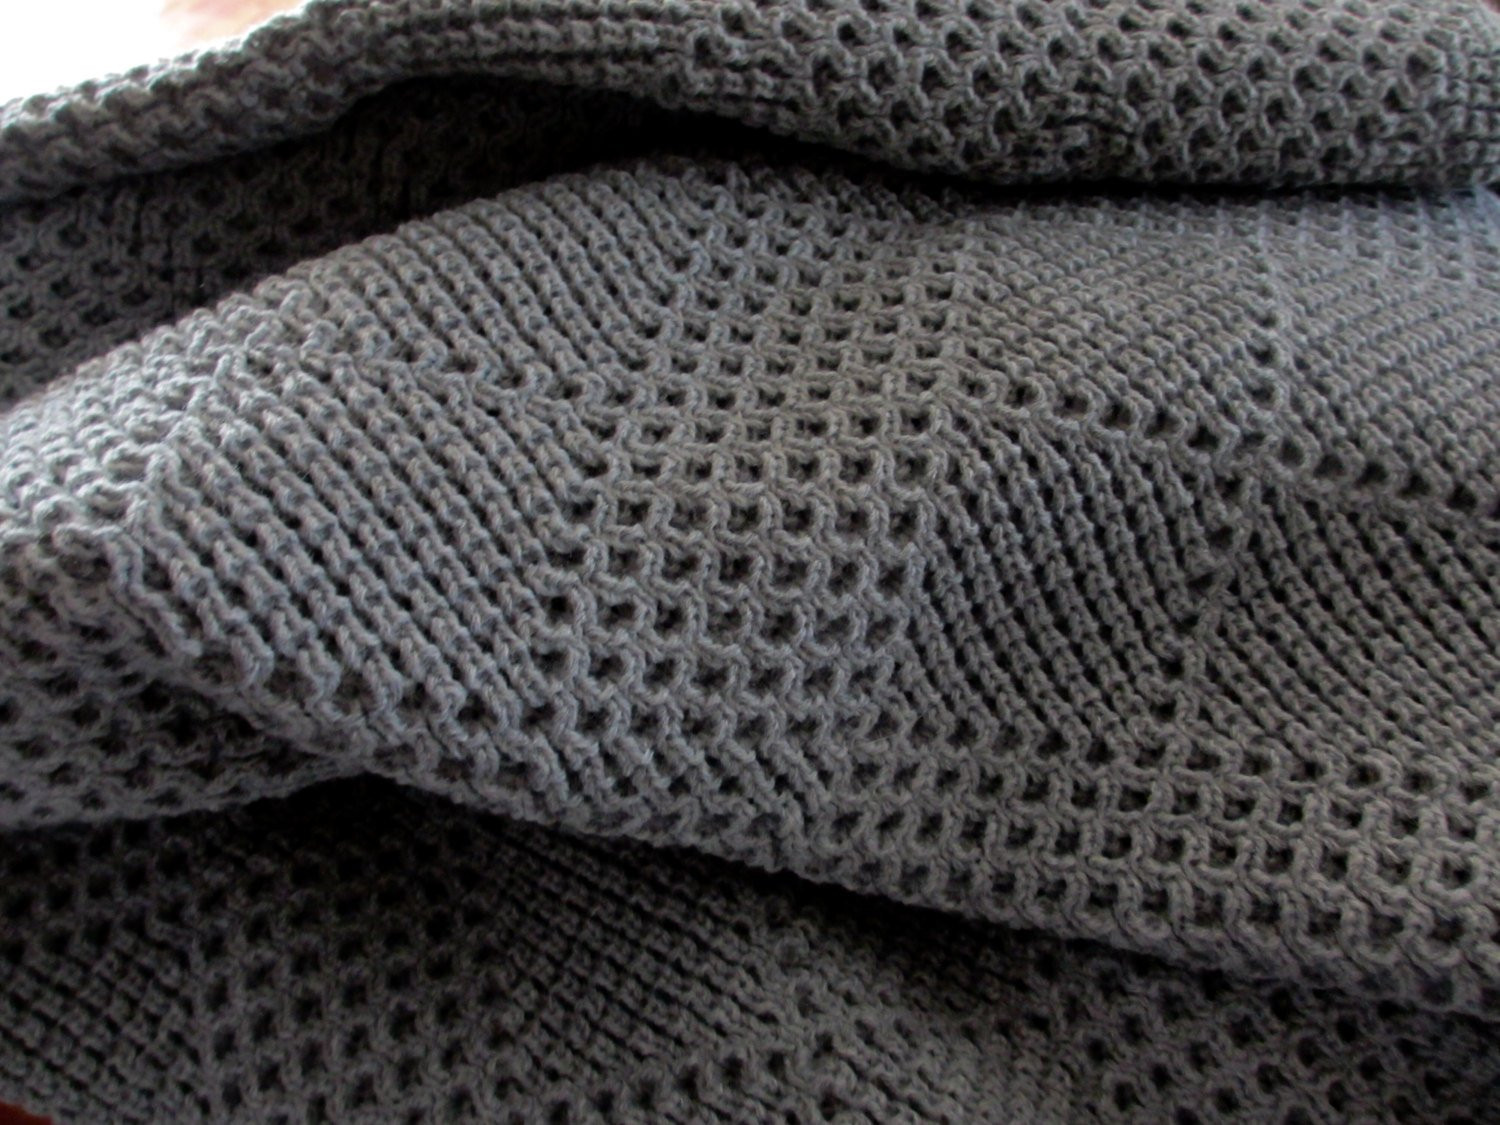 Knitted Throw Luxury Knitted Afghan Throw Blanket Medium Gray Of Wonderful 48 Images Knitted Throw